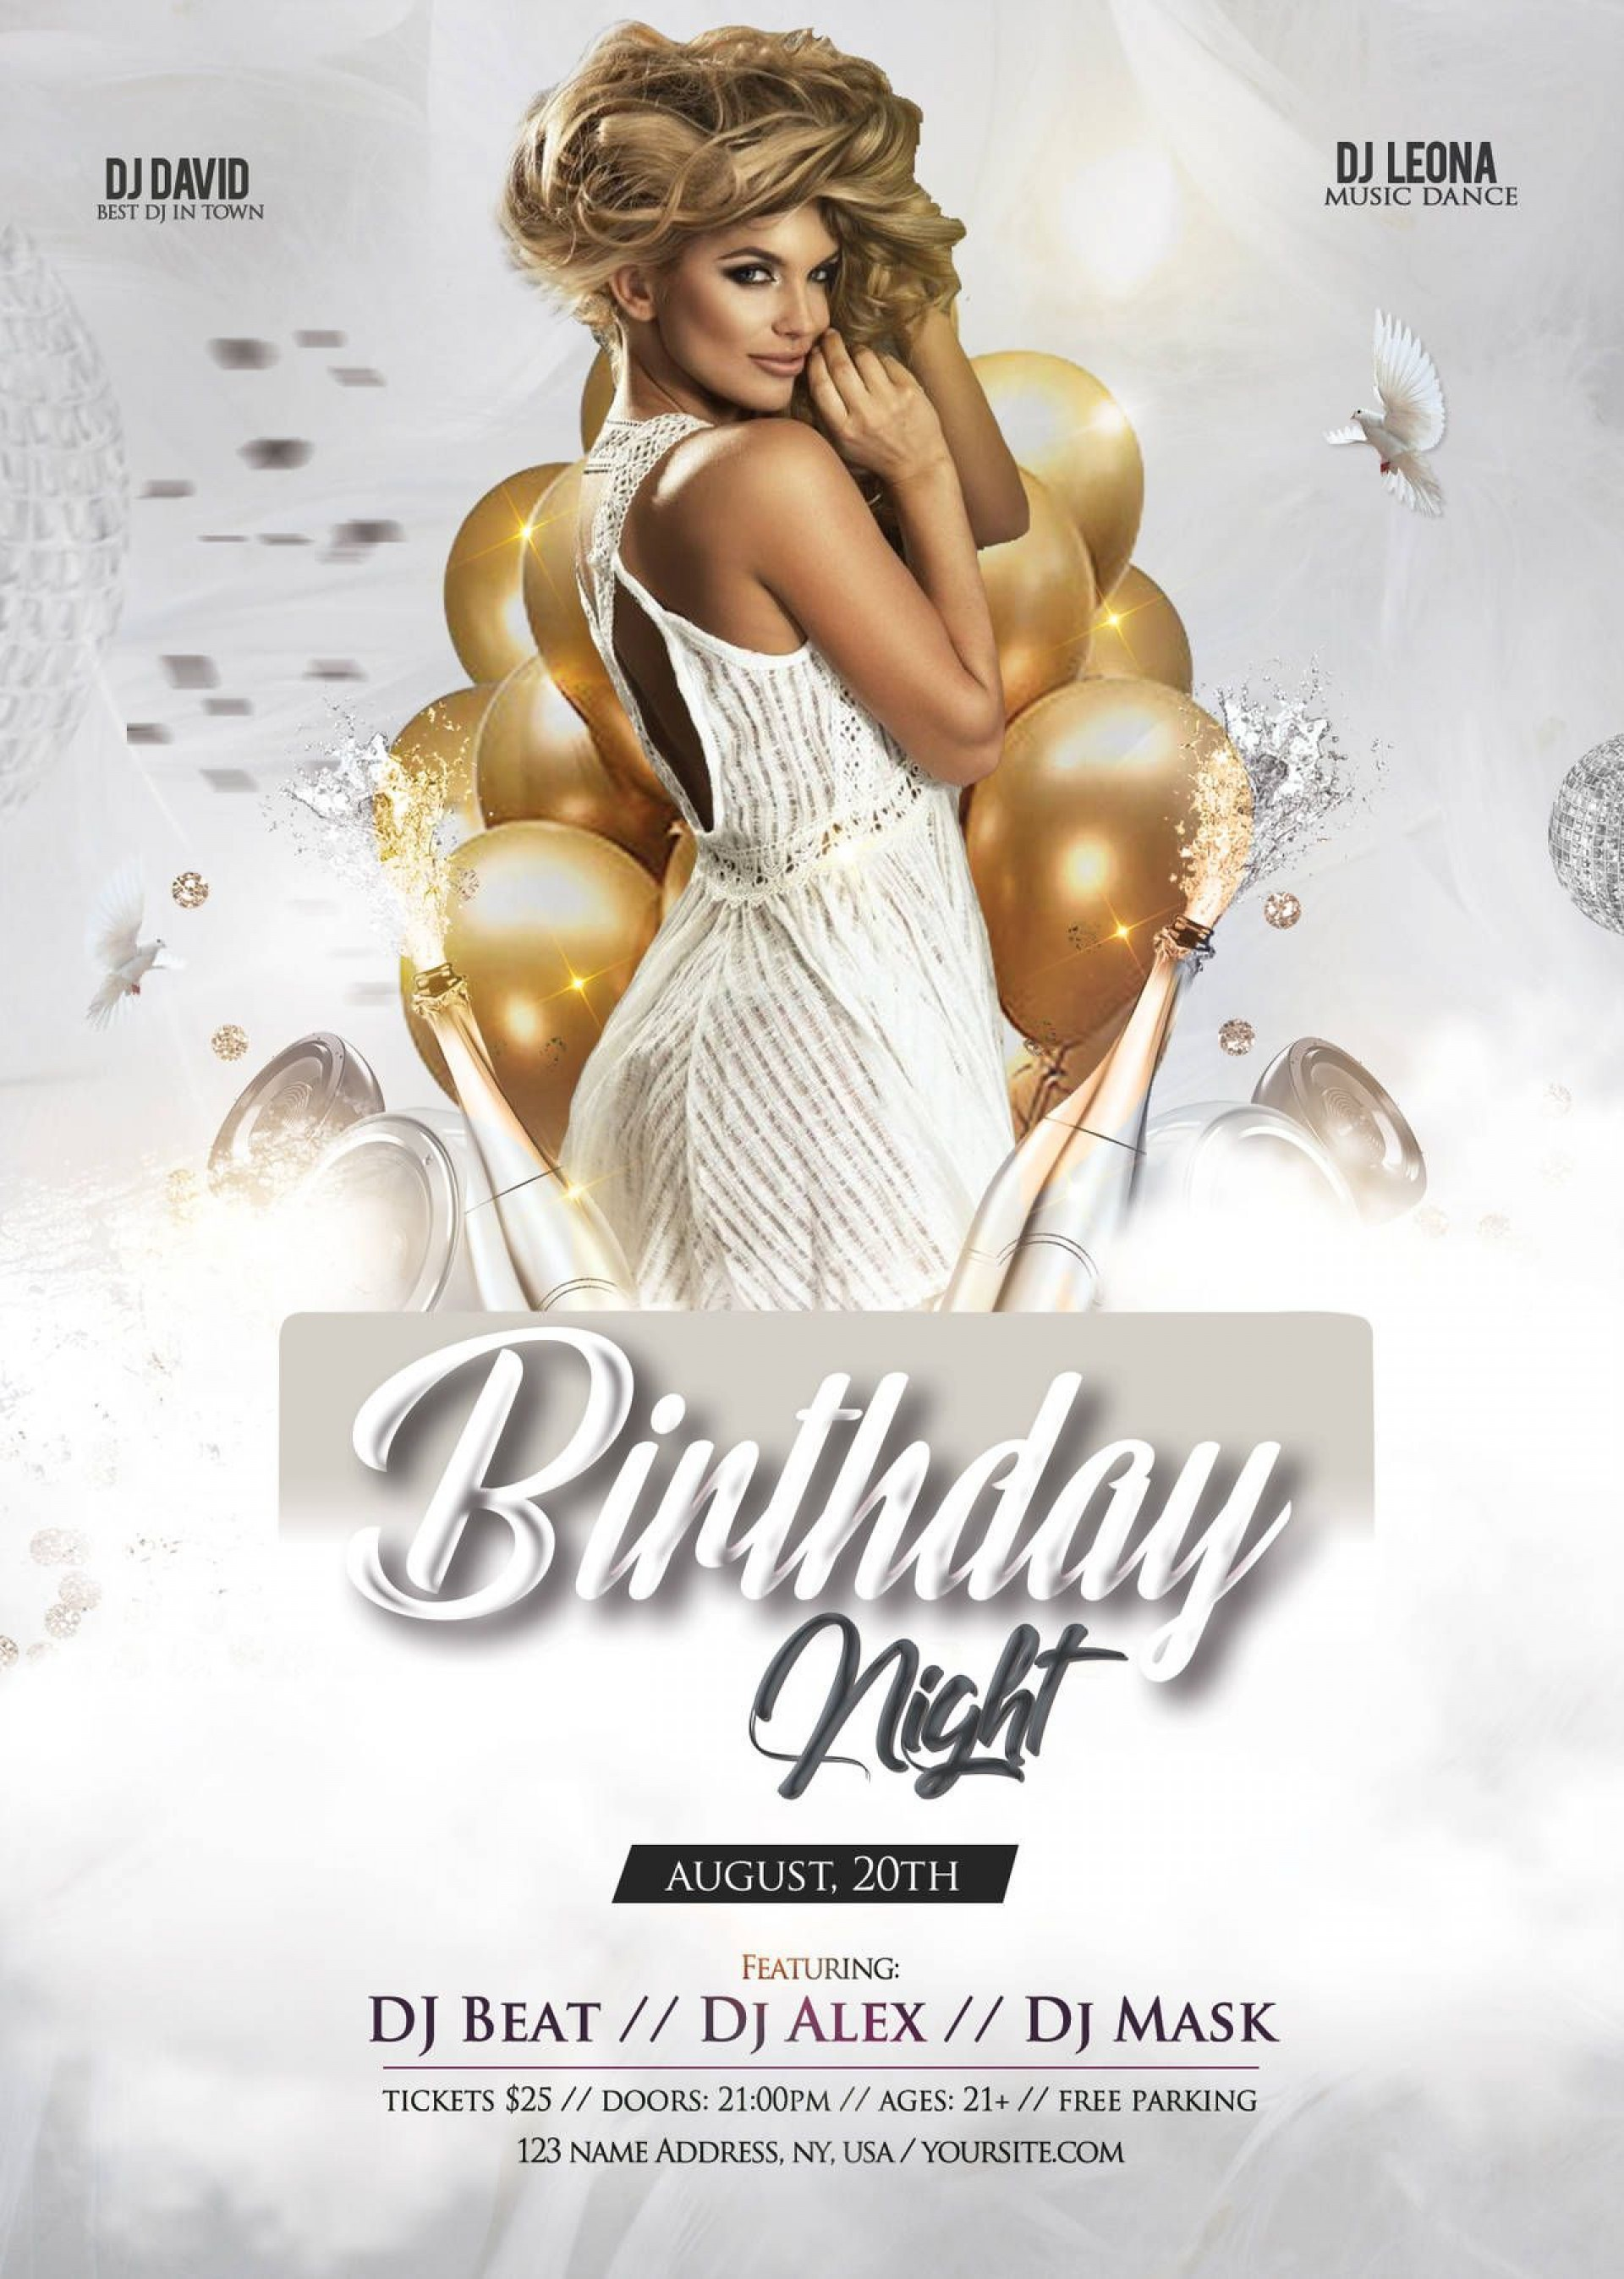 005 Unusual Birthday Flyer Template Psd Free Download High Definition 1920